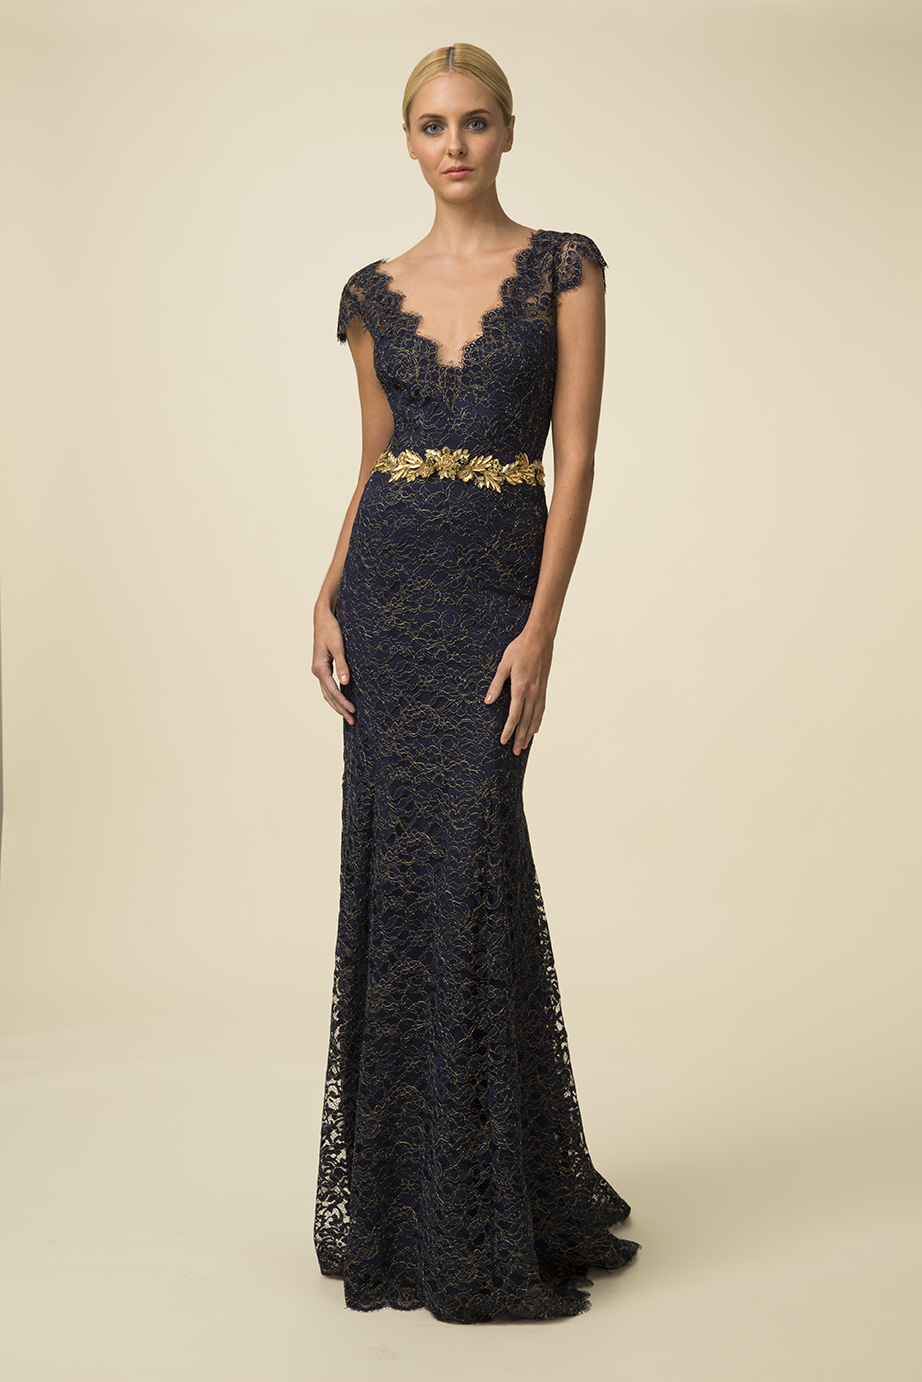 saks fifth avenue evening dresses photo - 1